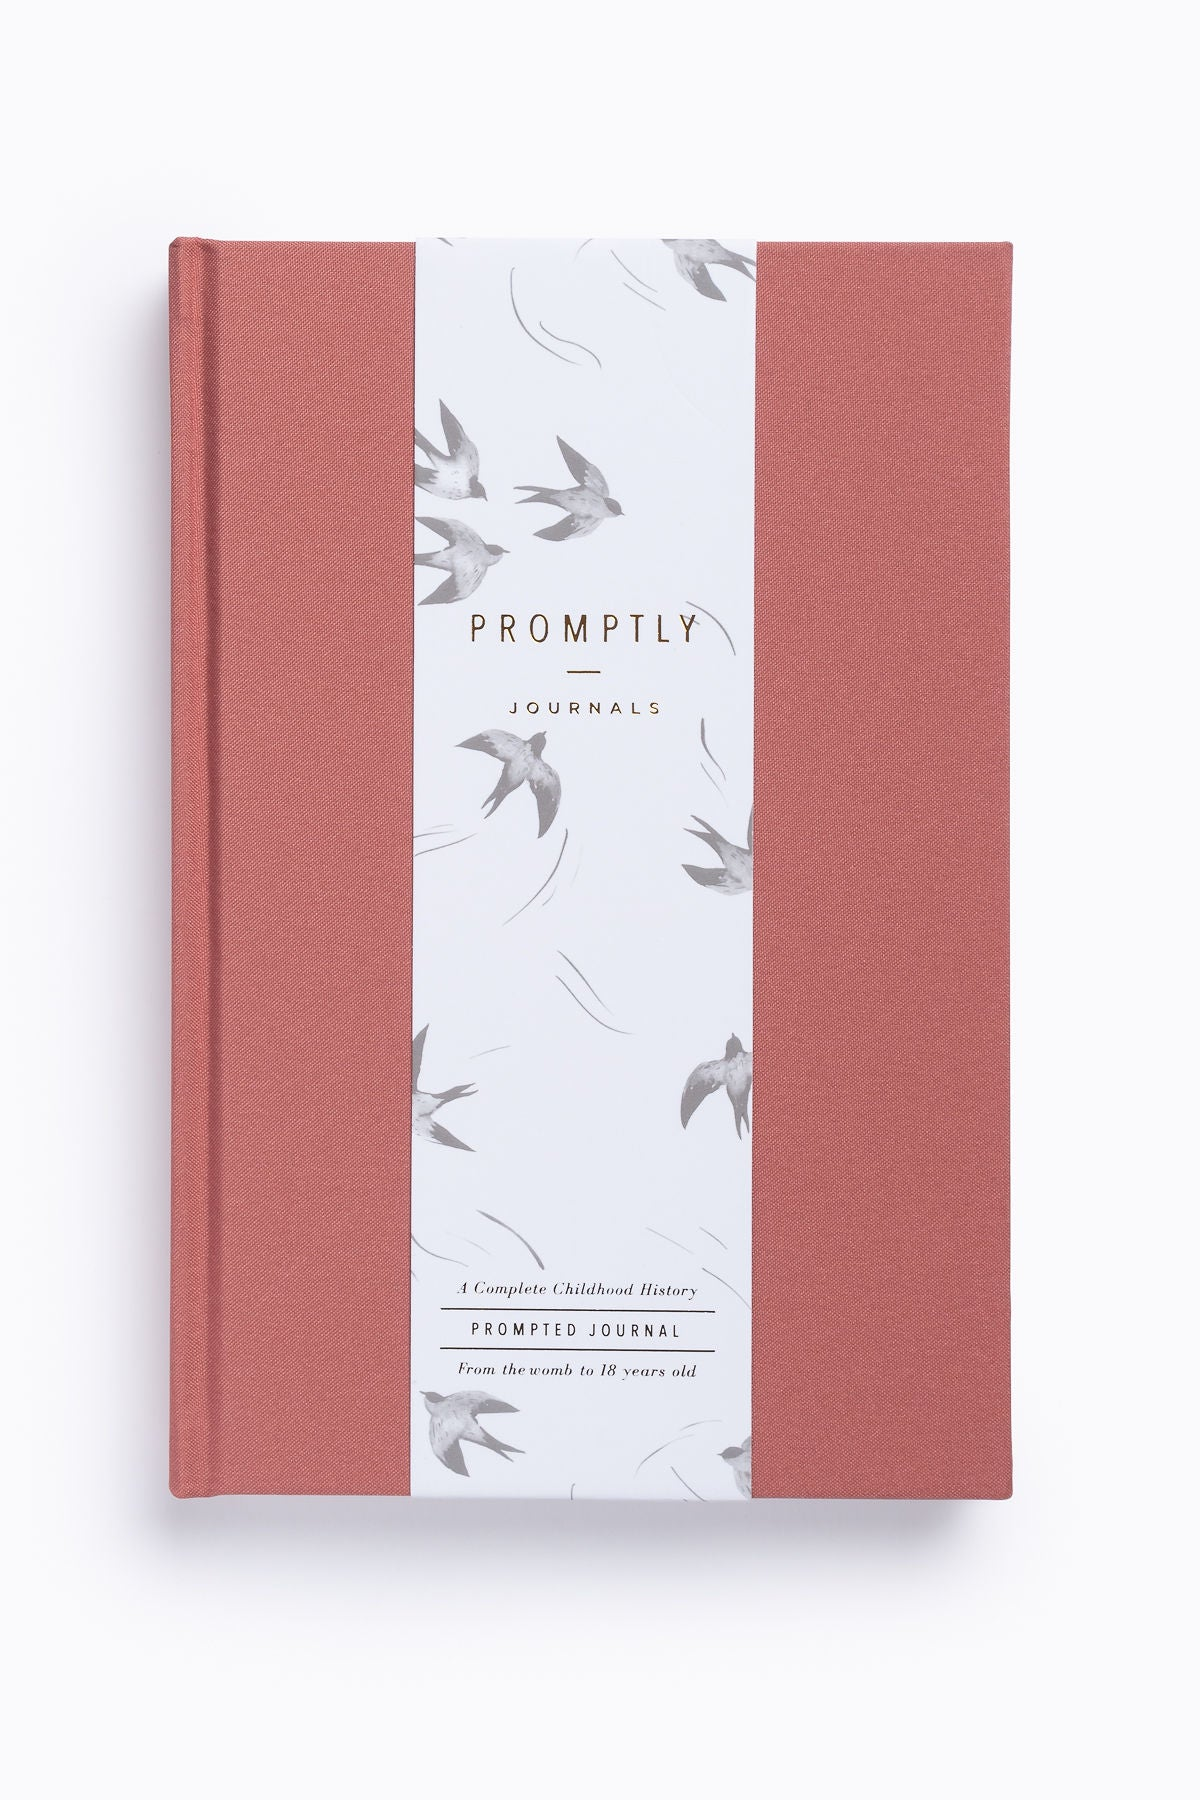 Promptly Journals: Childhood History in Dusty Rose